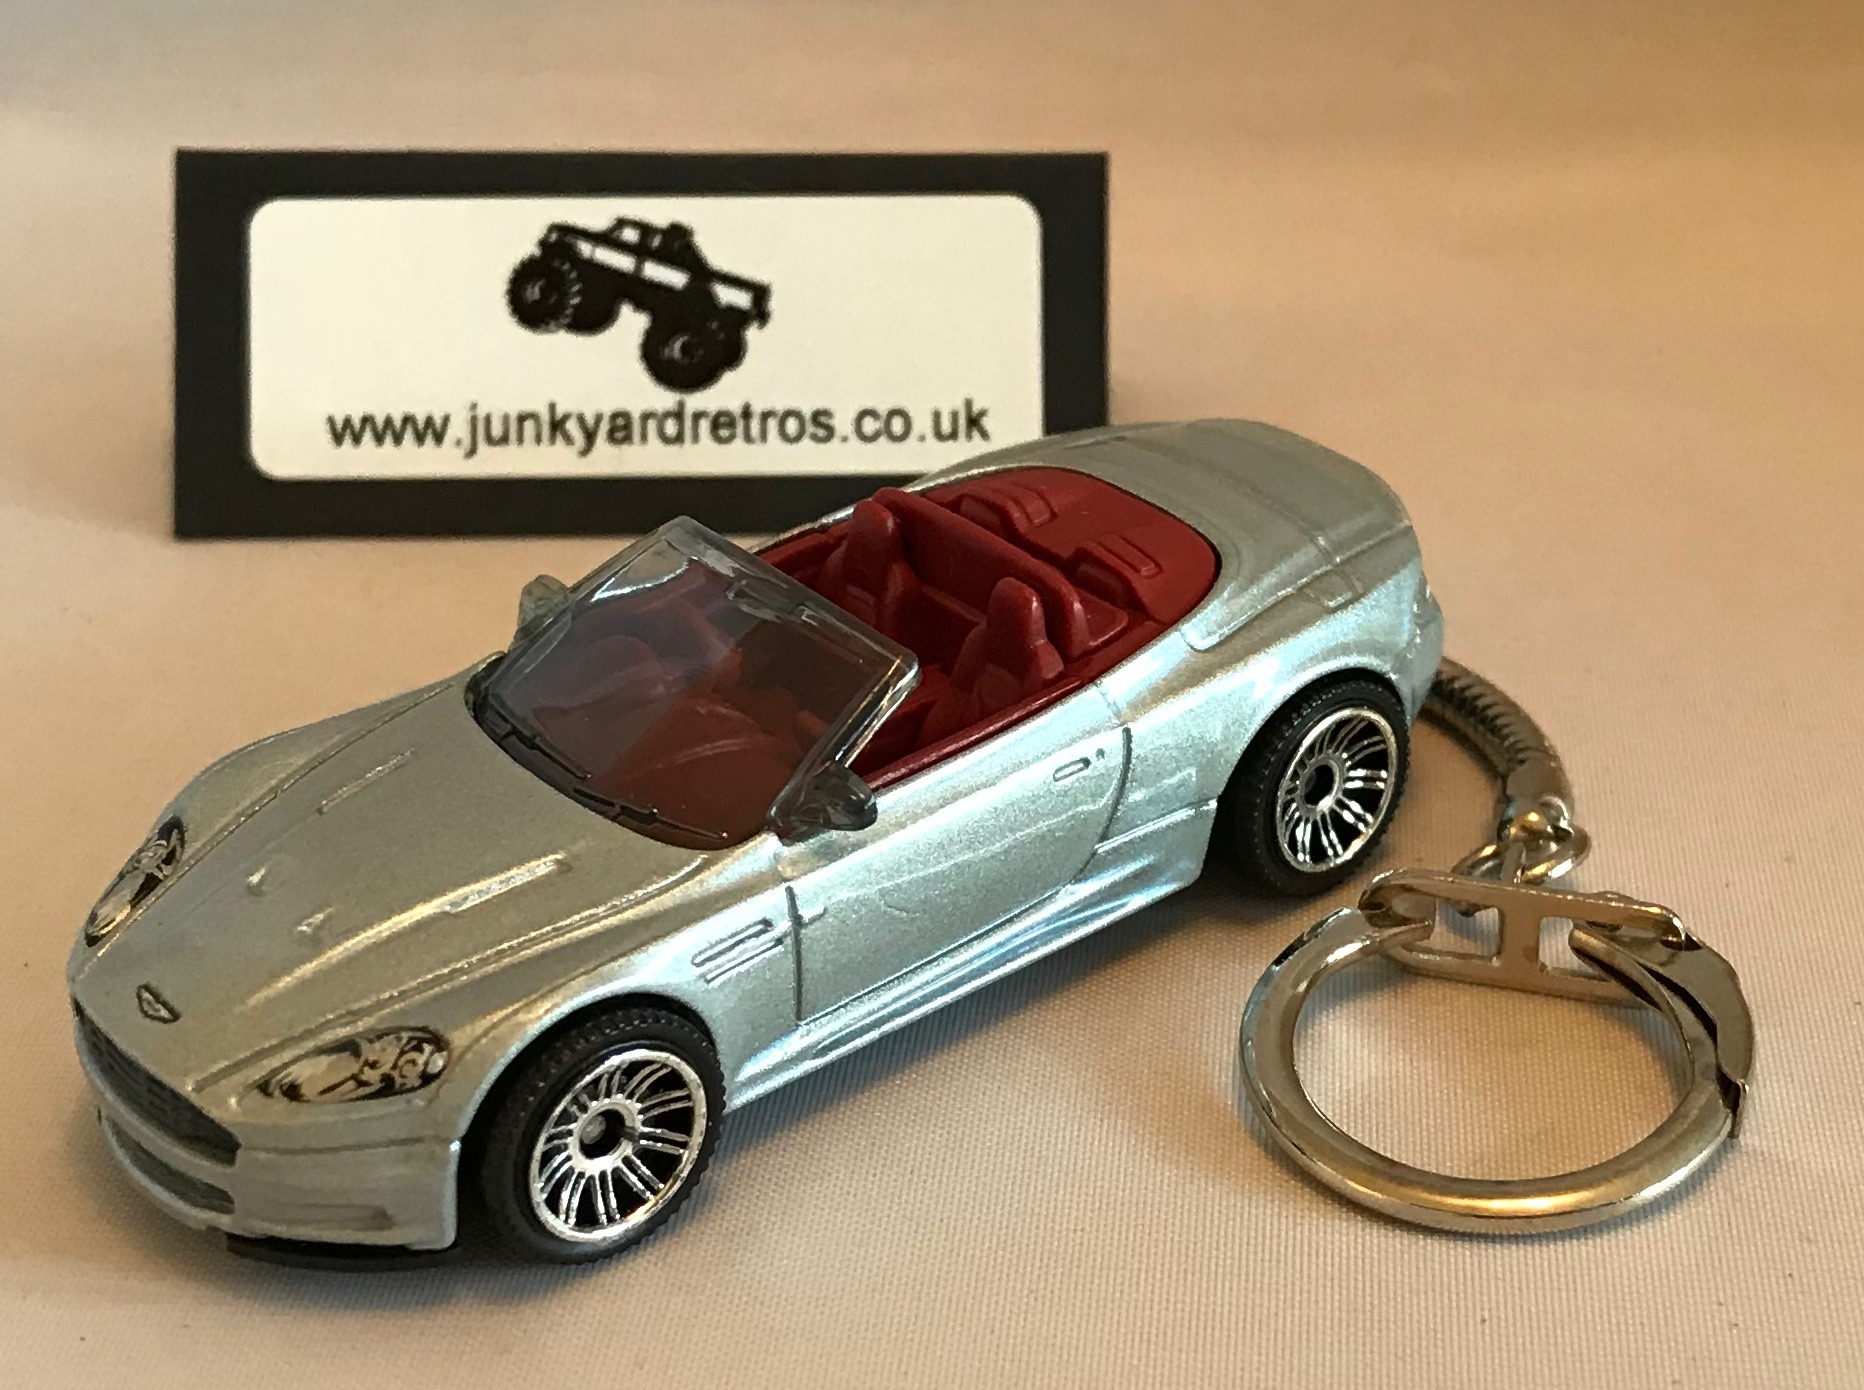 aston martin dbs convertible keyring / keychain 1/56 scale silver